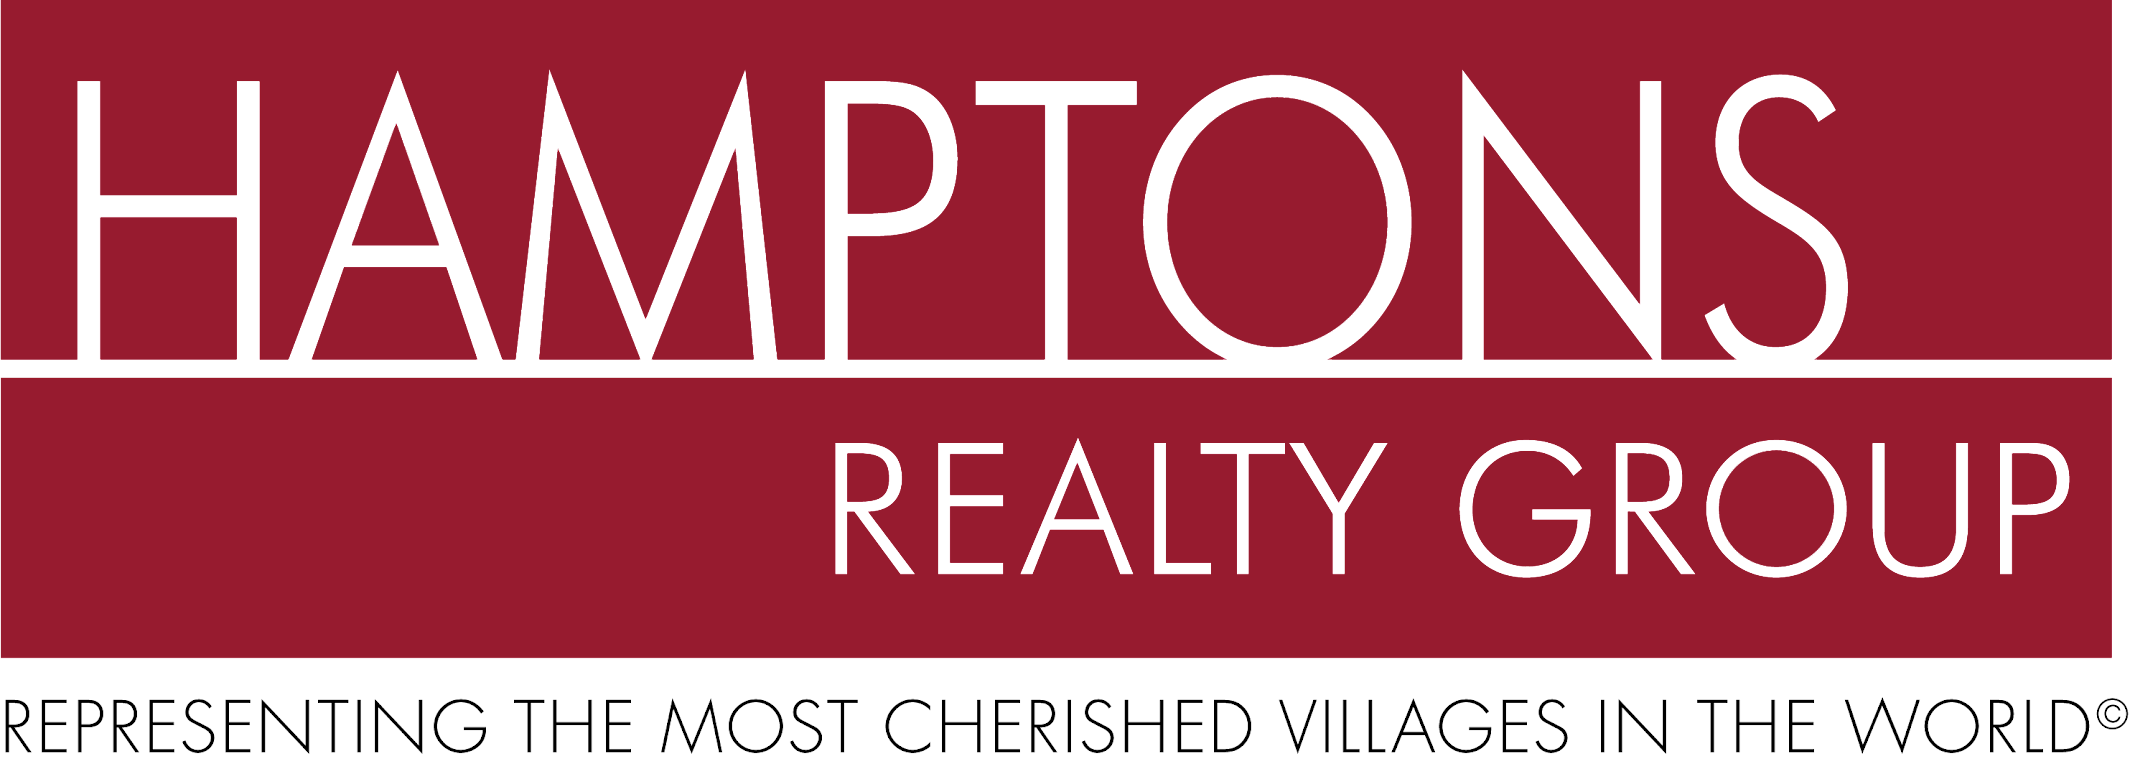 Hamptons Realty Group HRG